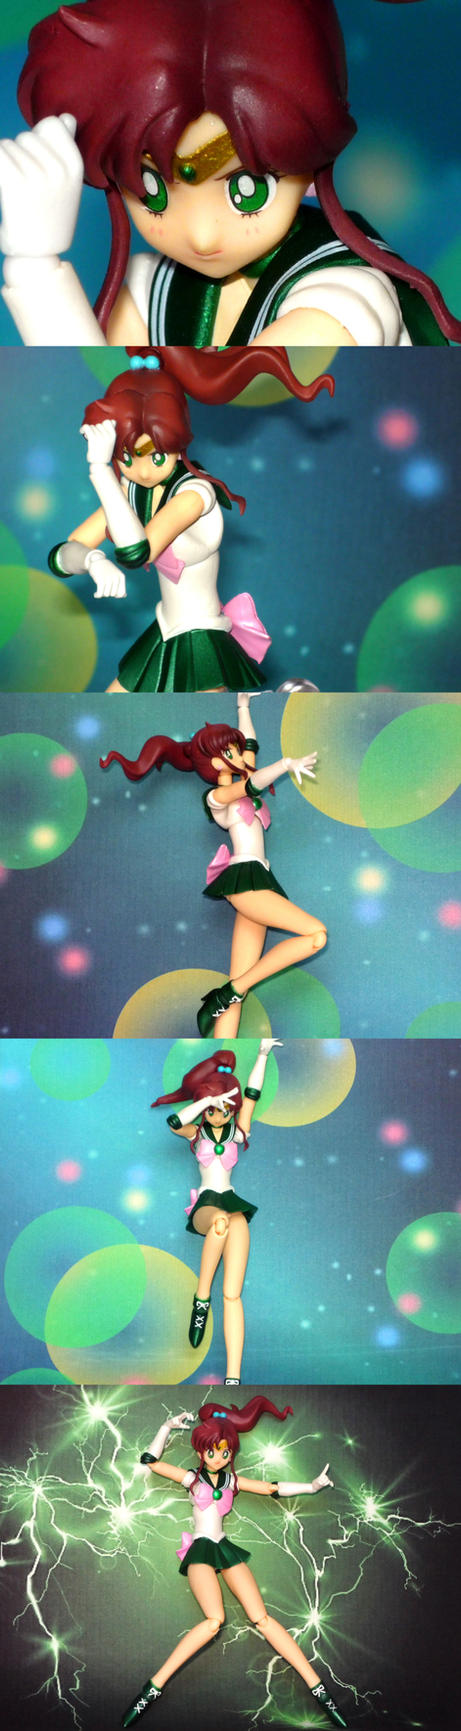 Sailor Moon S.H. Figuarts - Sailor Jupiter by MoonCollectar